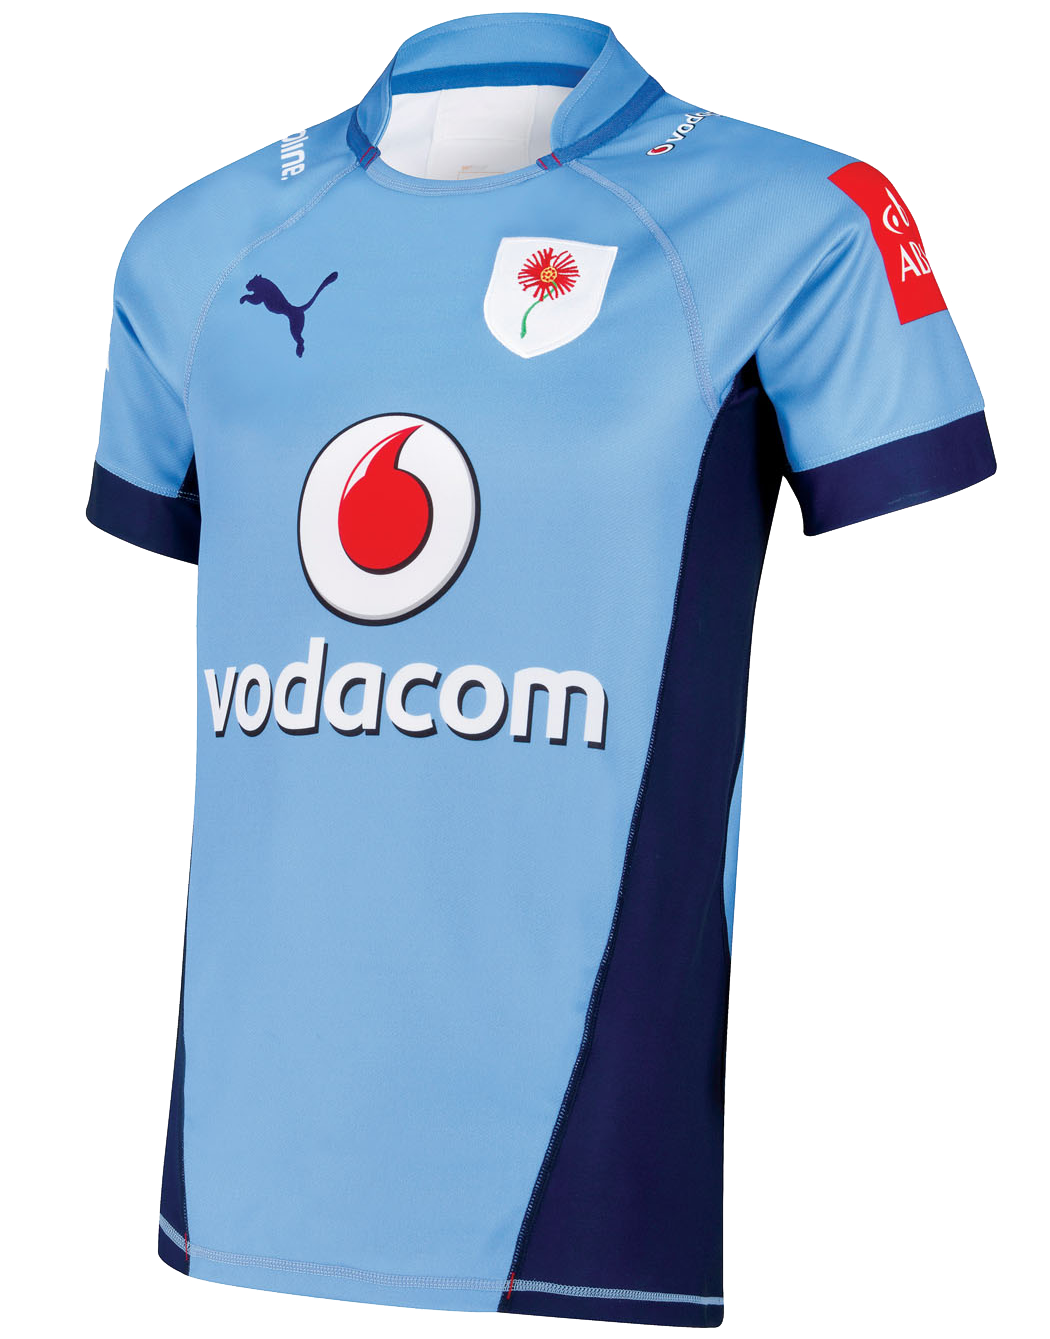 Bulls Currie Cup kit